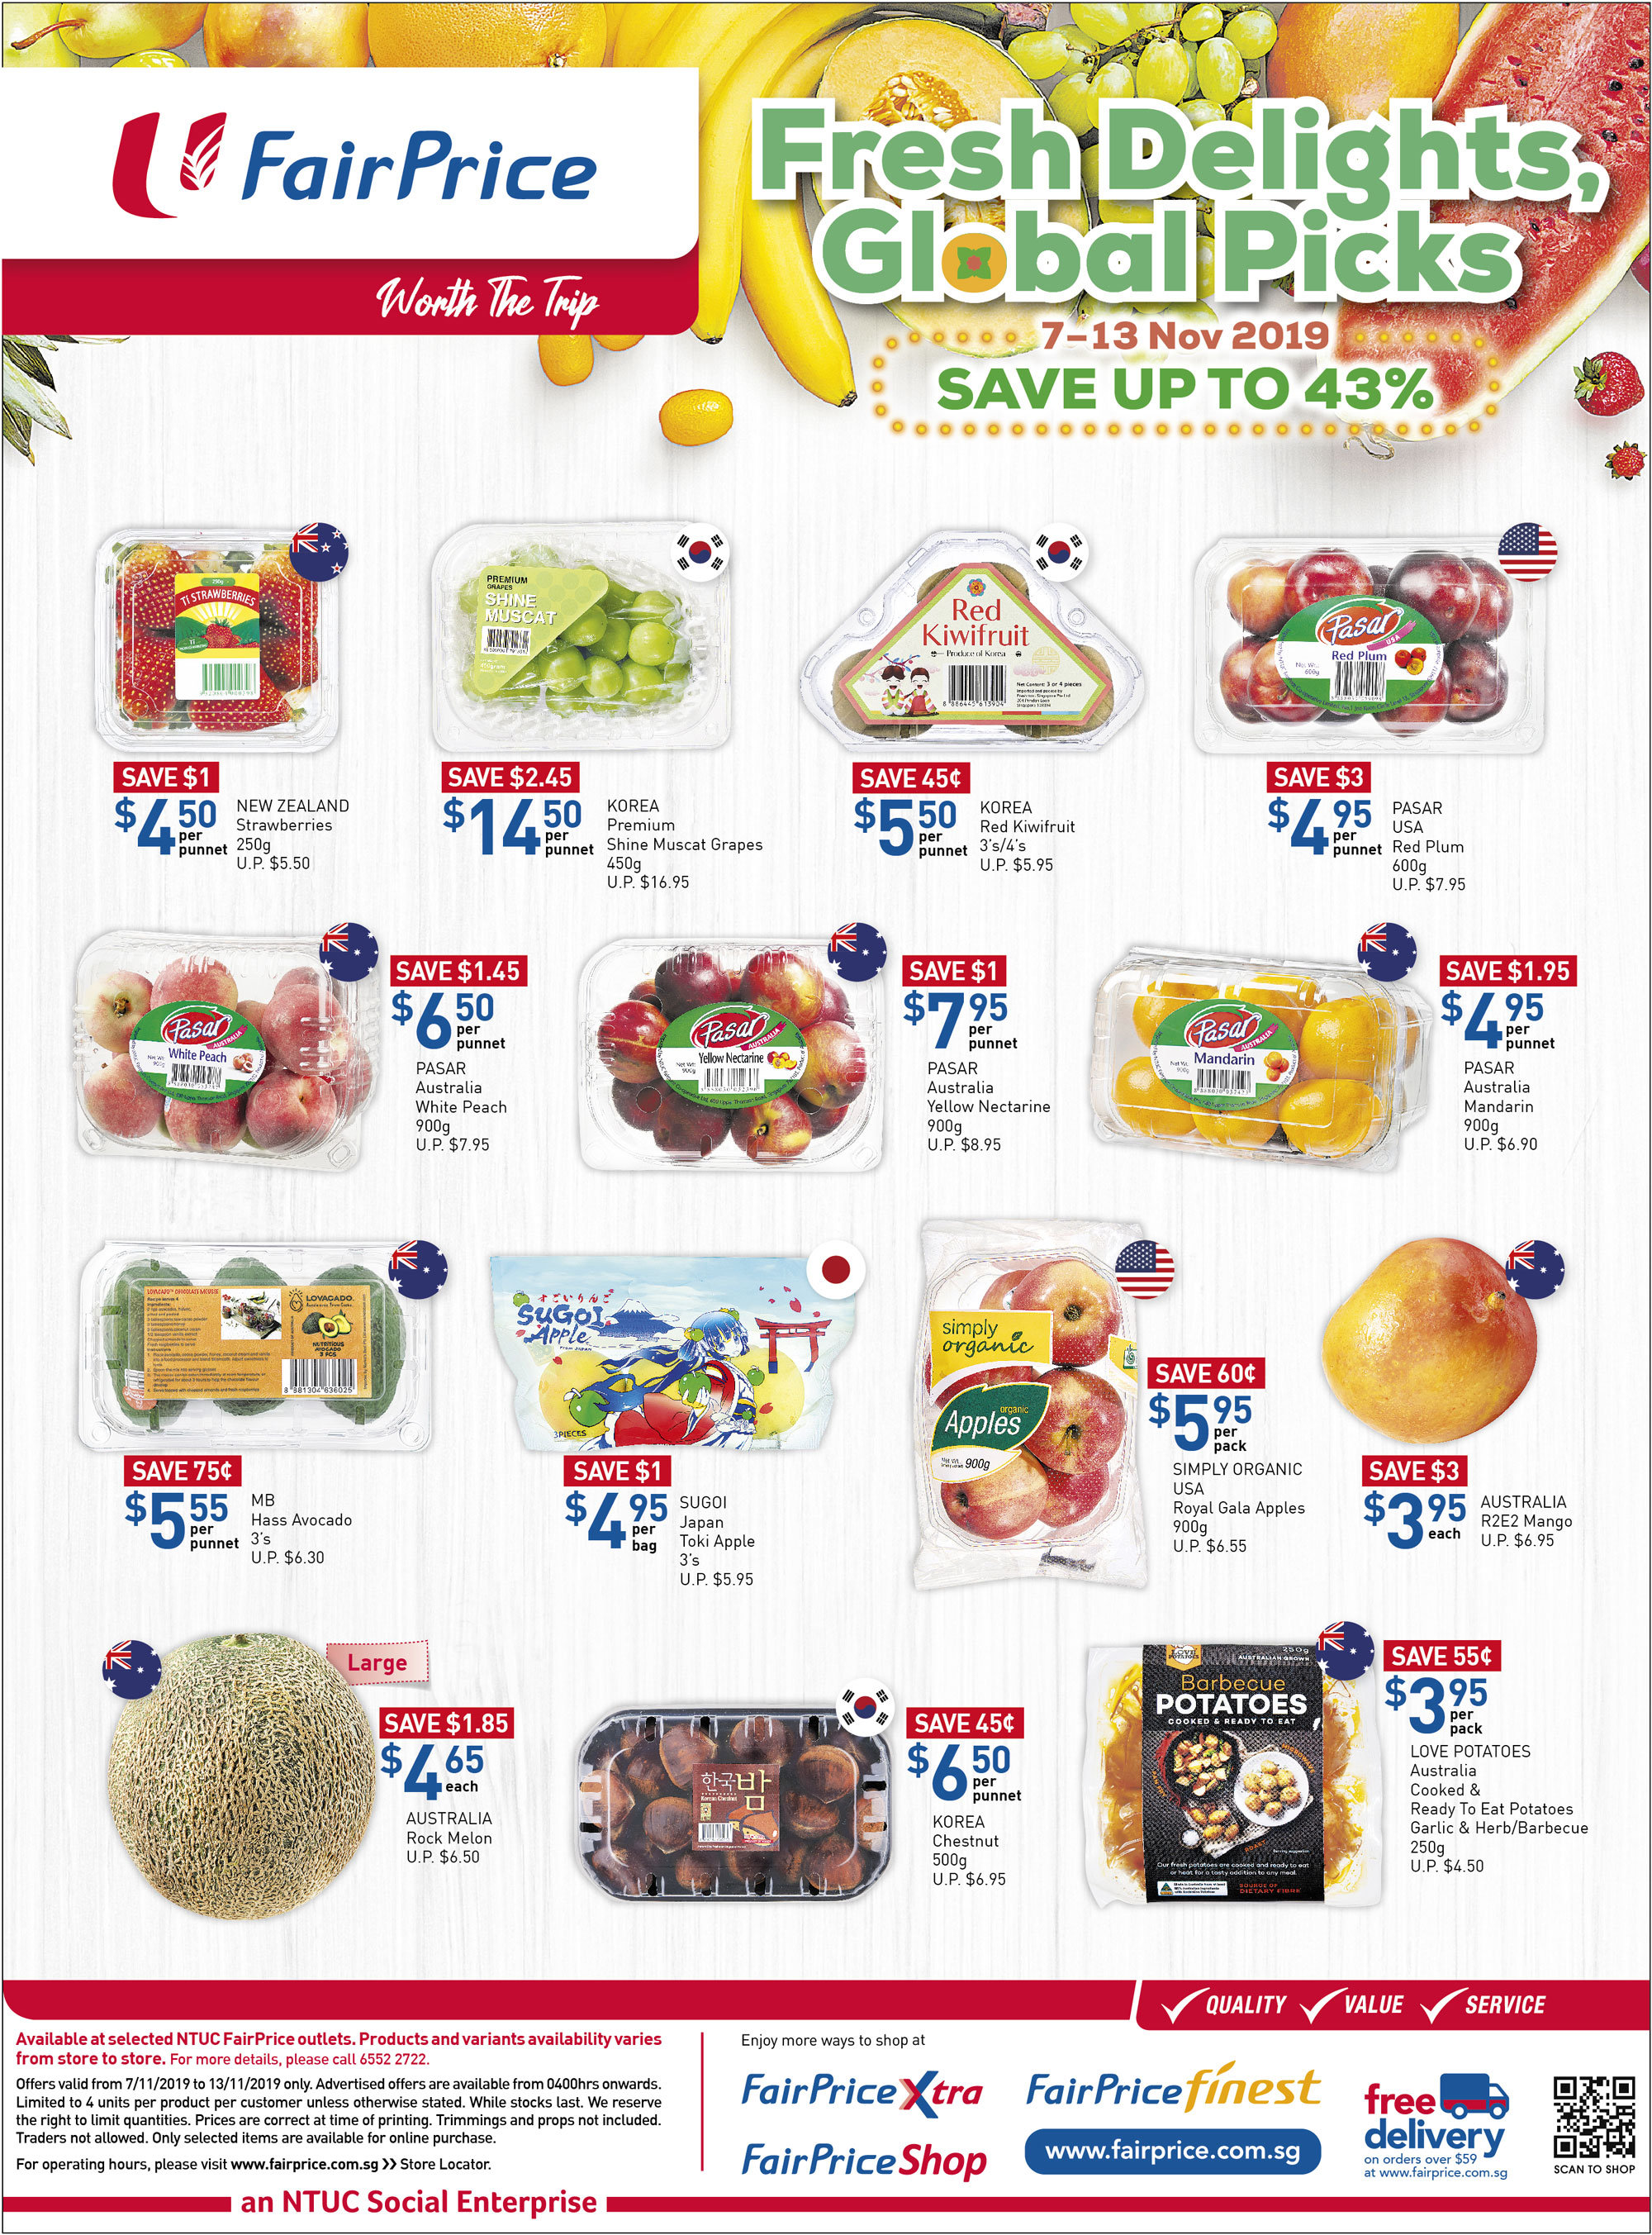 NTUC FairPrice Singapore Your Weekly Saver Promotions 7-13 Nov 2019   Why Not Deals 6 & Promotions